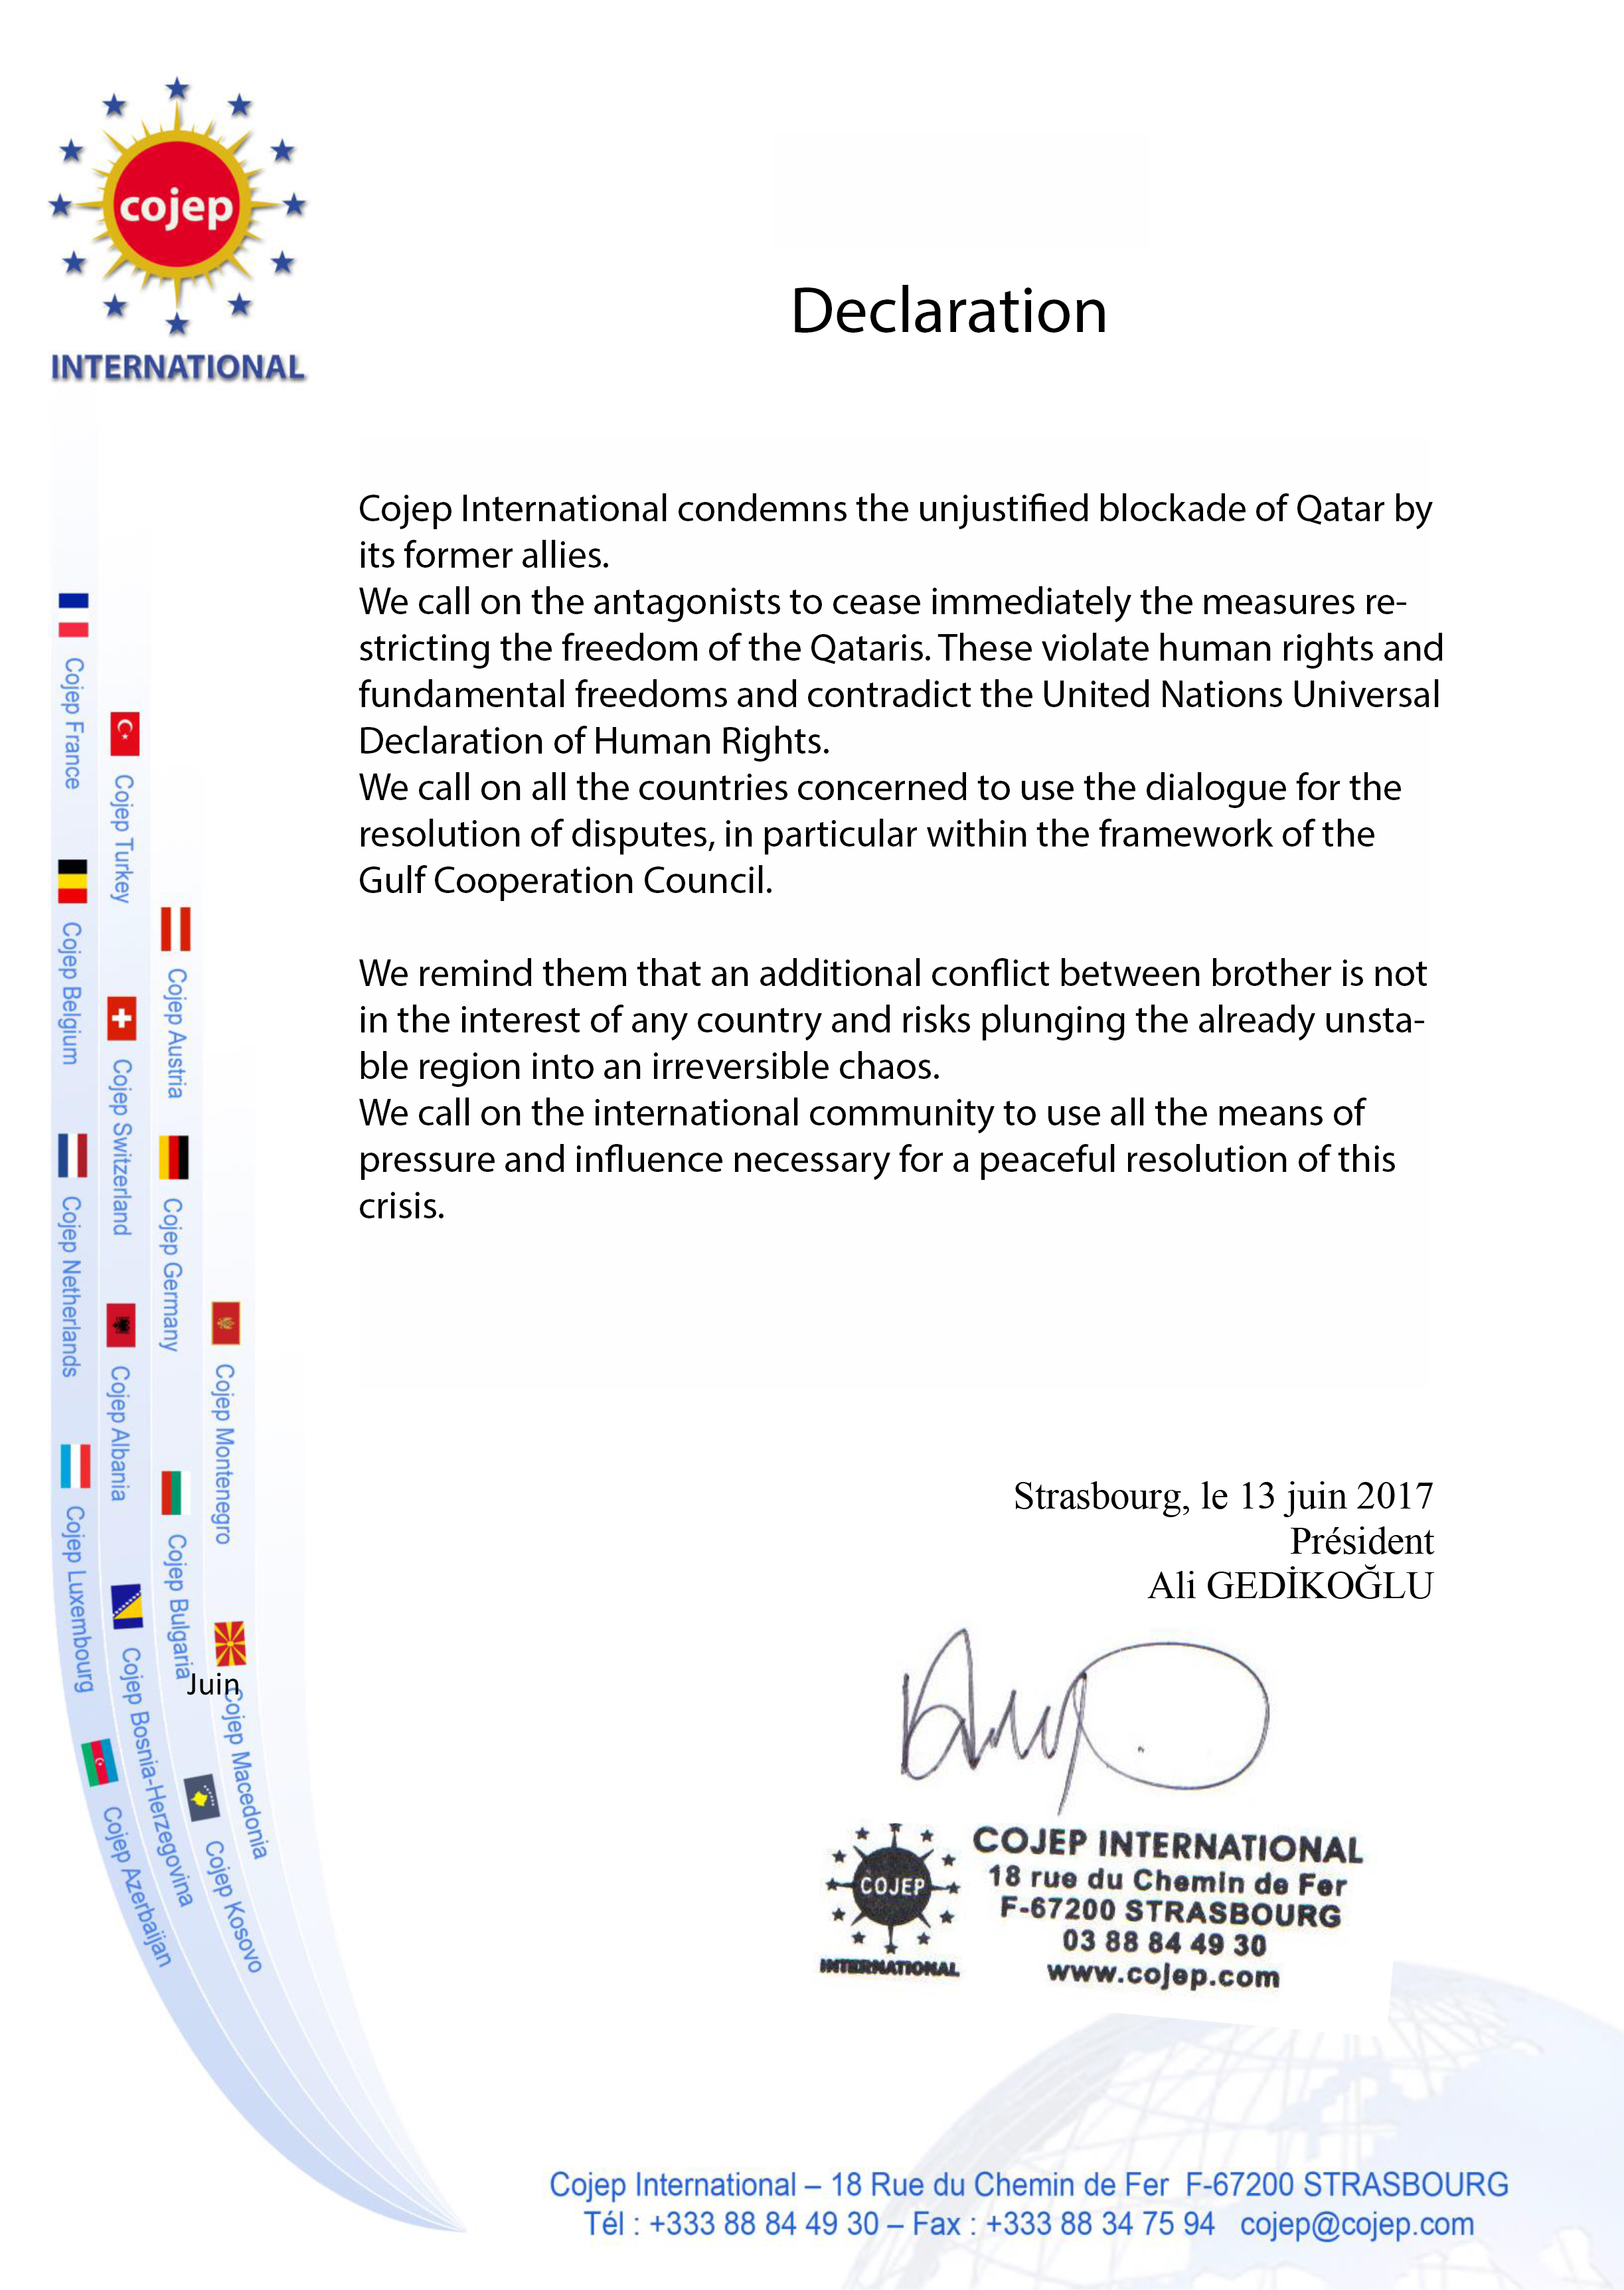 Cojep International condemns the unjustified blockade of Qatar by its former allies.